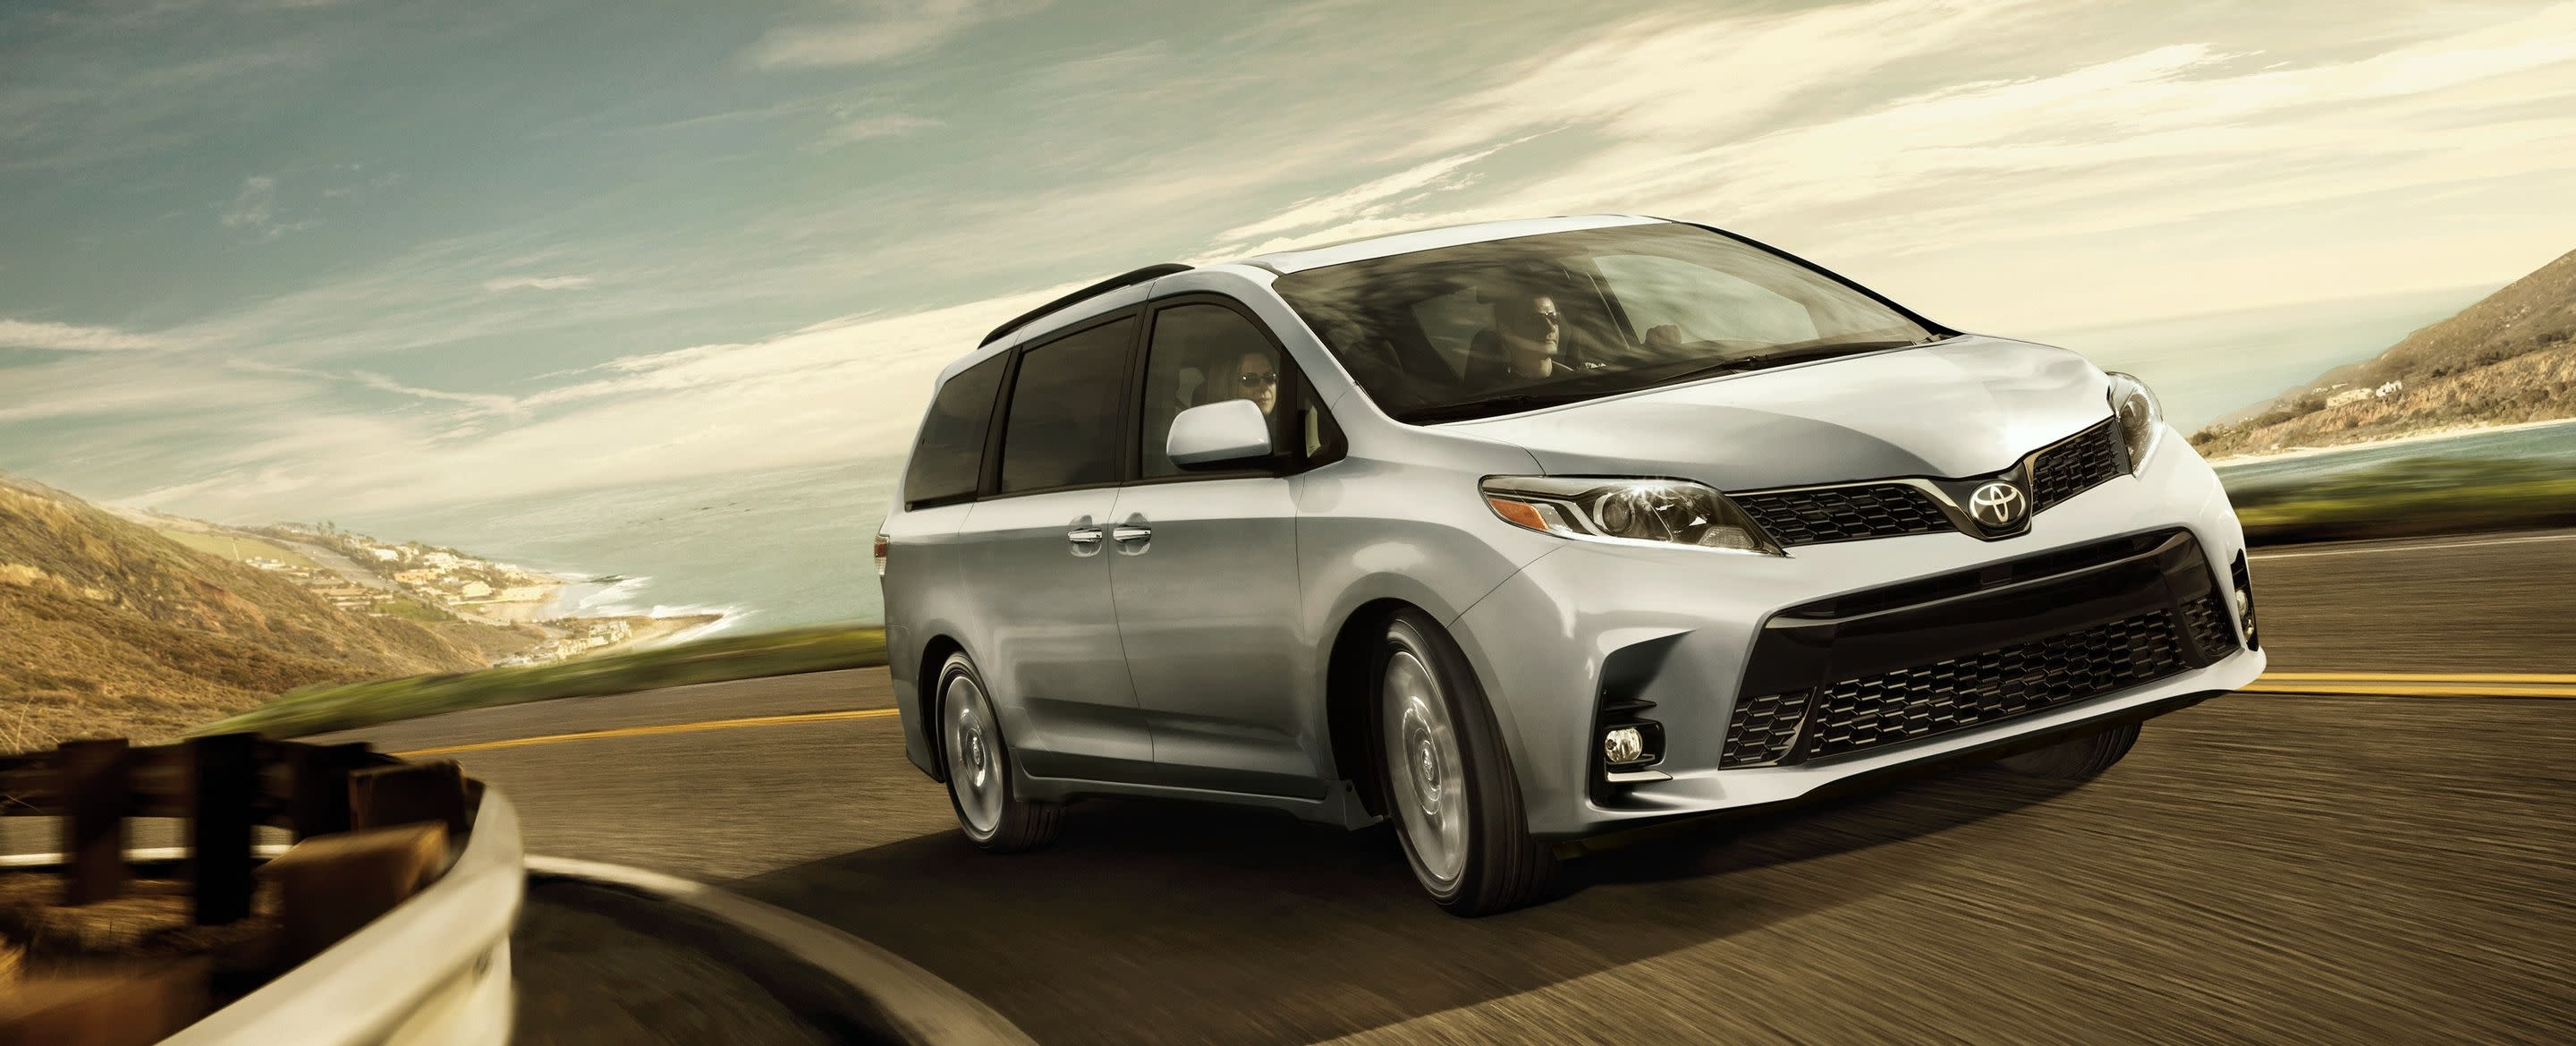 2019 Toyota Sienna for Sale near Palo Alto, CA